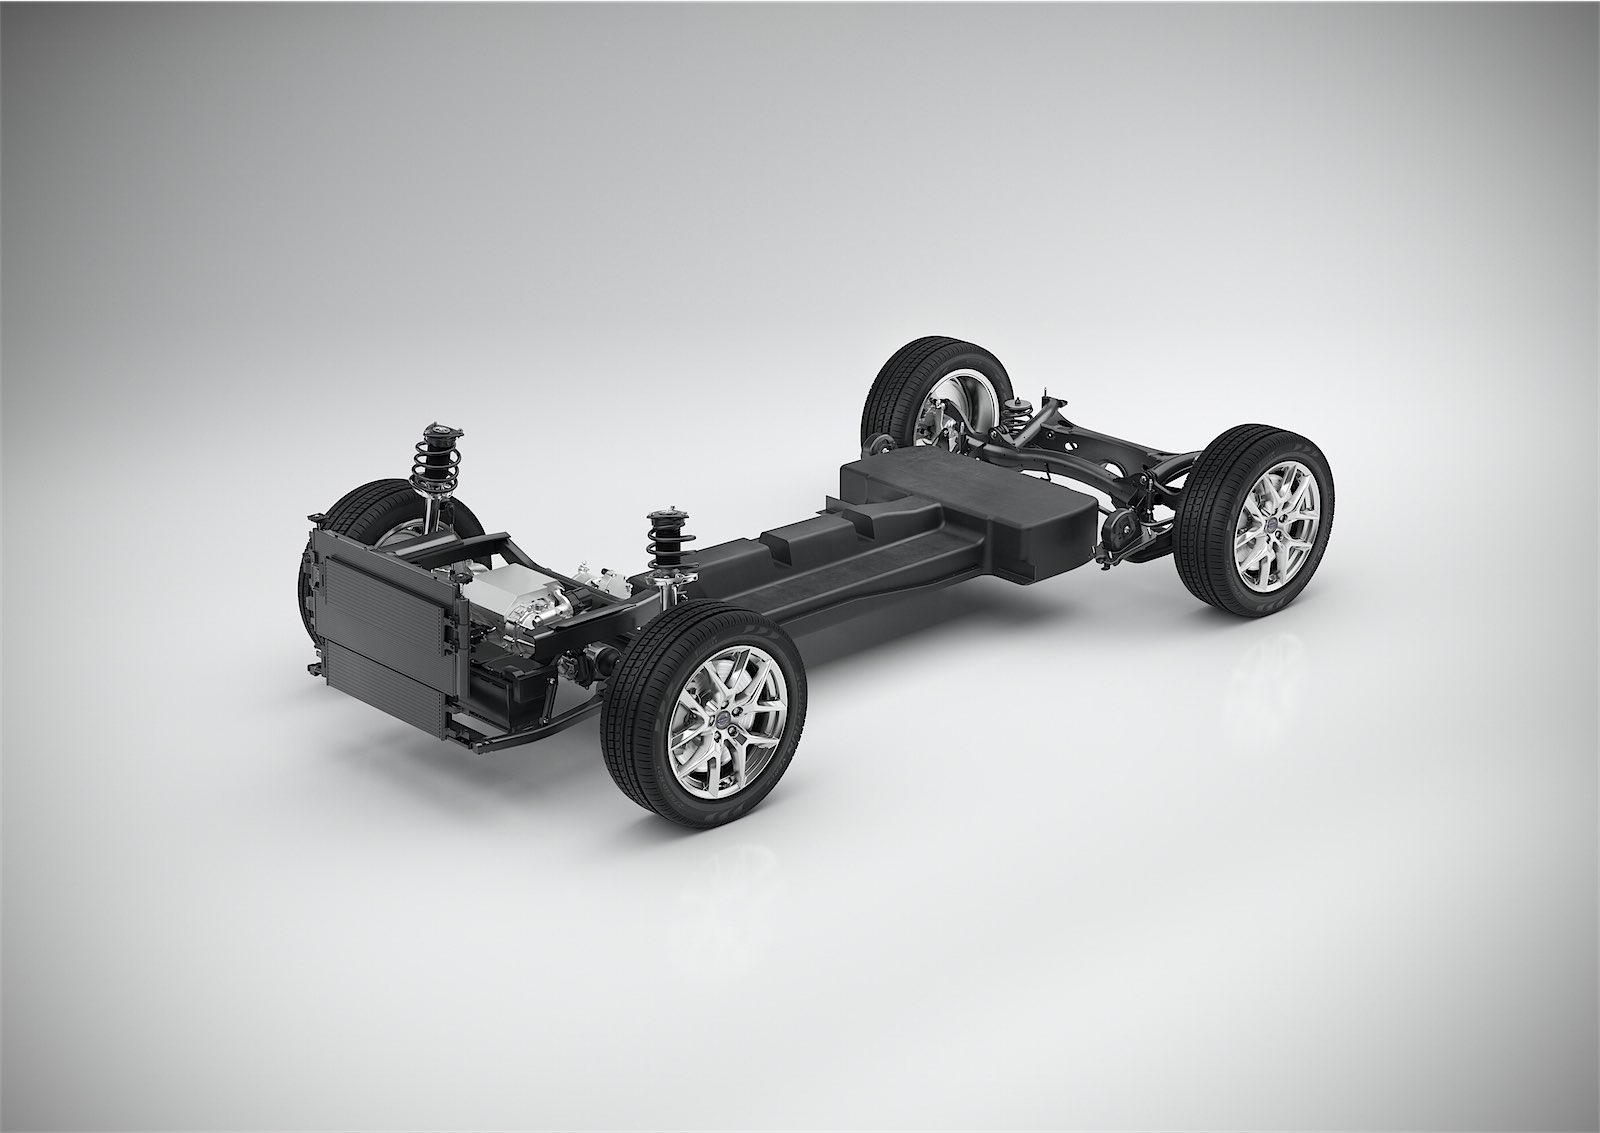 190831_cma_battery_electric_vehicle_technical_concept_study_3_4_view-resized.jpg